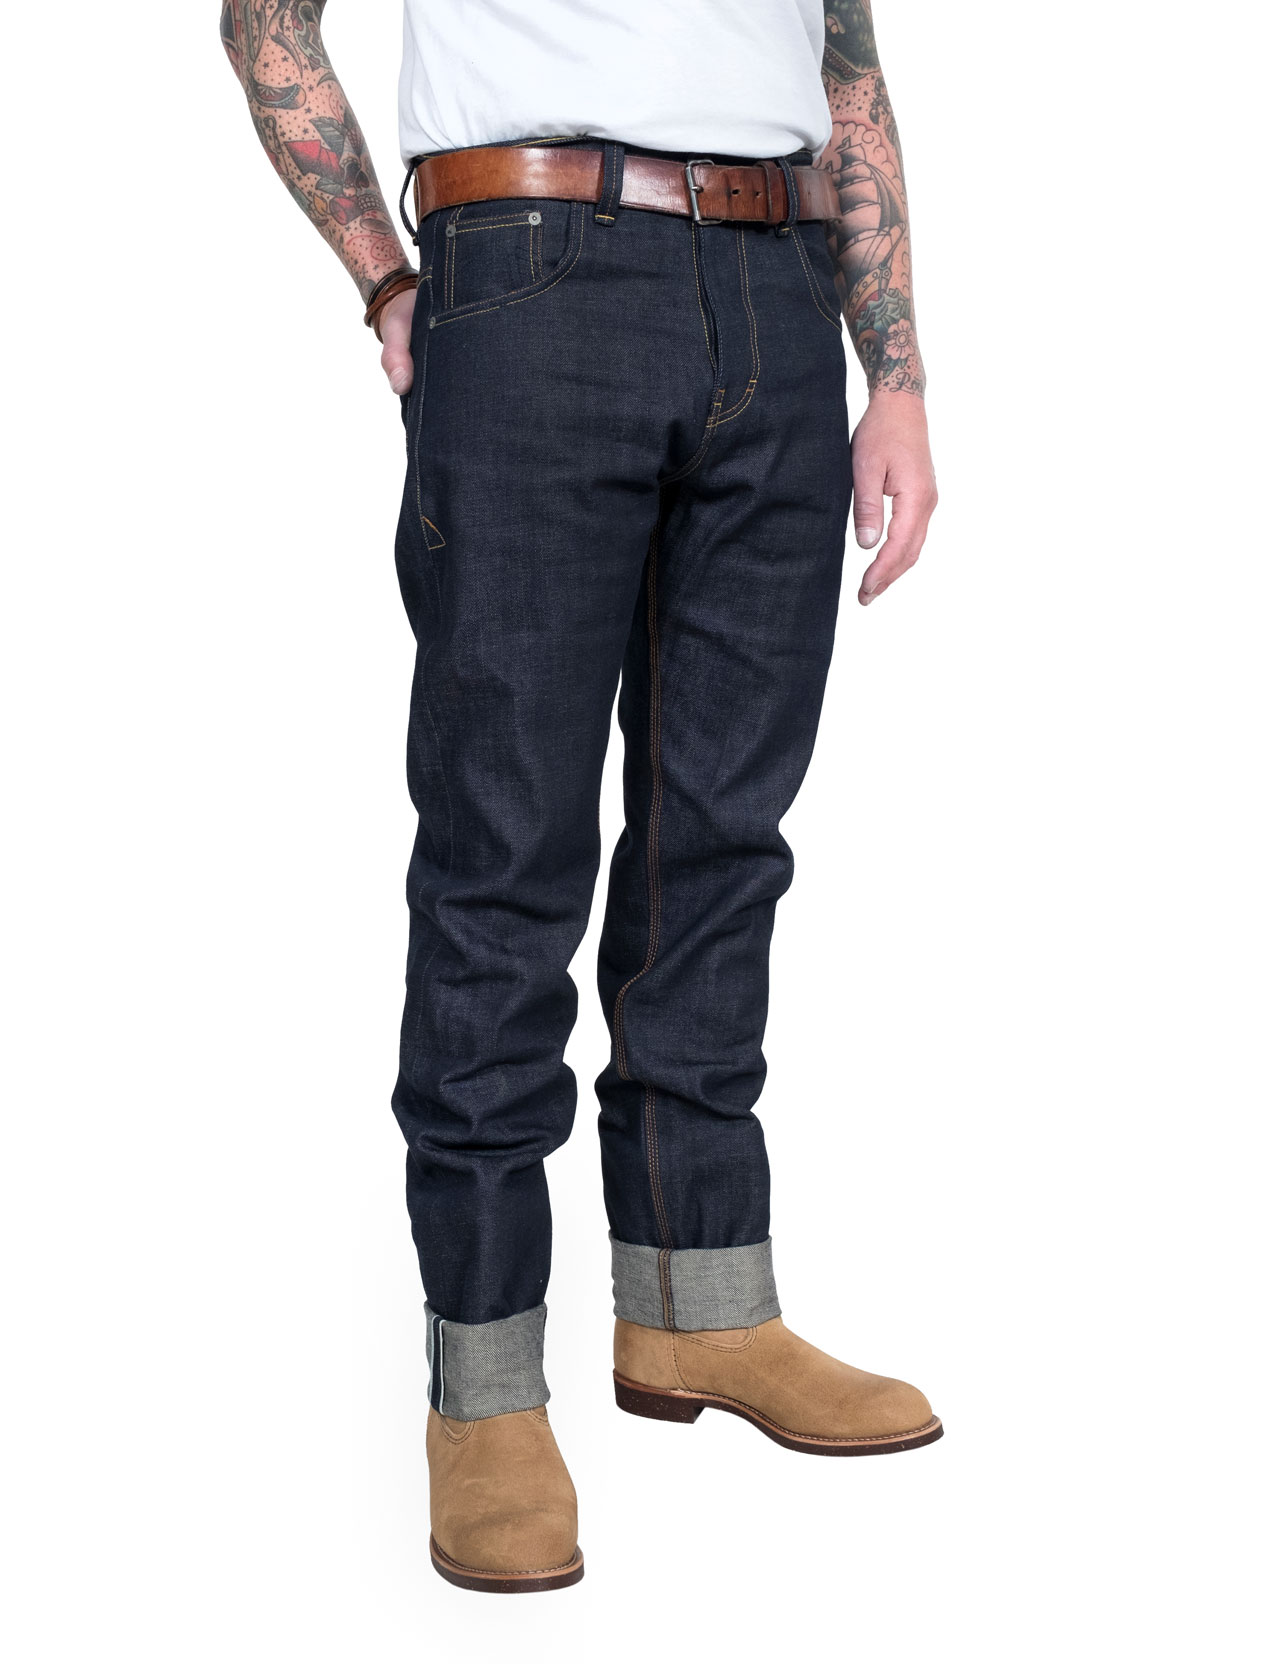 Eat Dust - Fit 73 Raw Selvage Jeans - Indigo